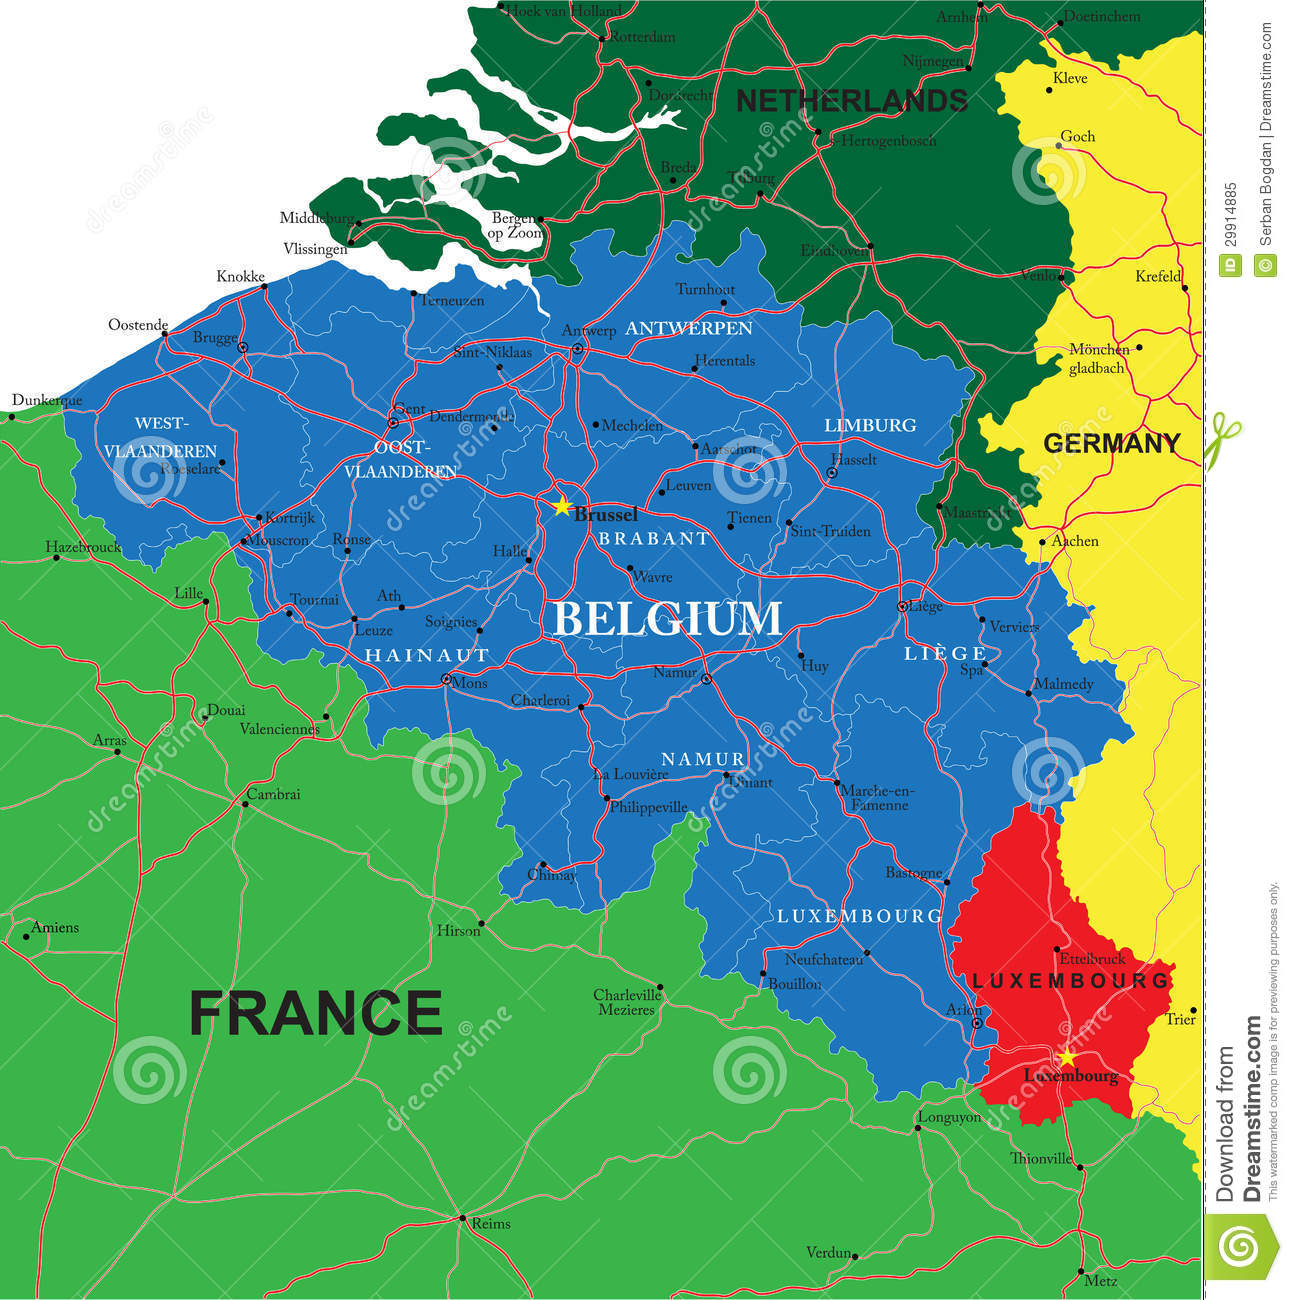 Belgium Map Royalty Free Photo Image 29914885 – Map of Belgium with Cities